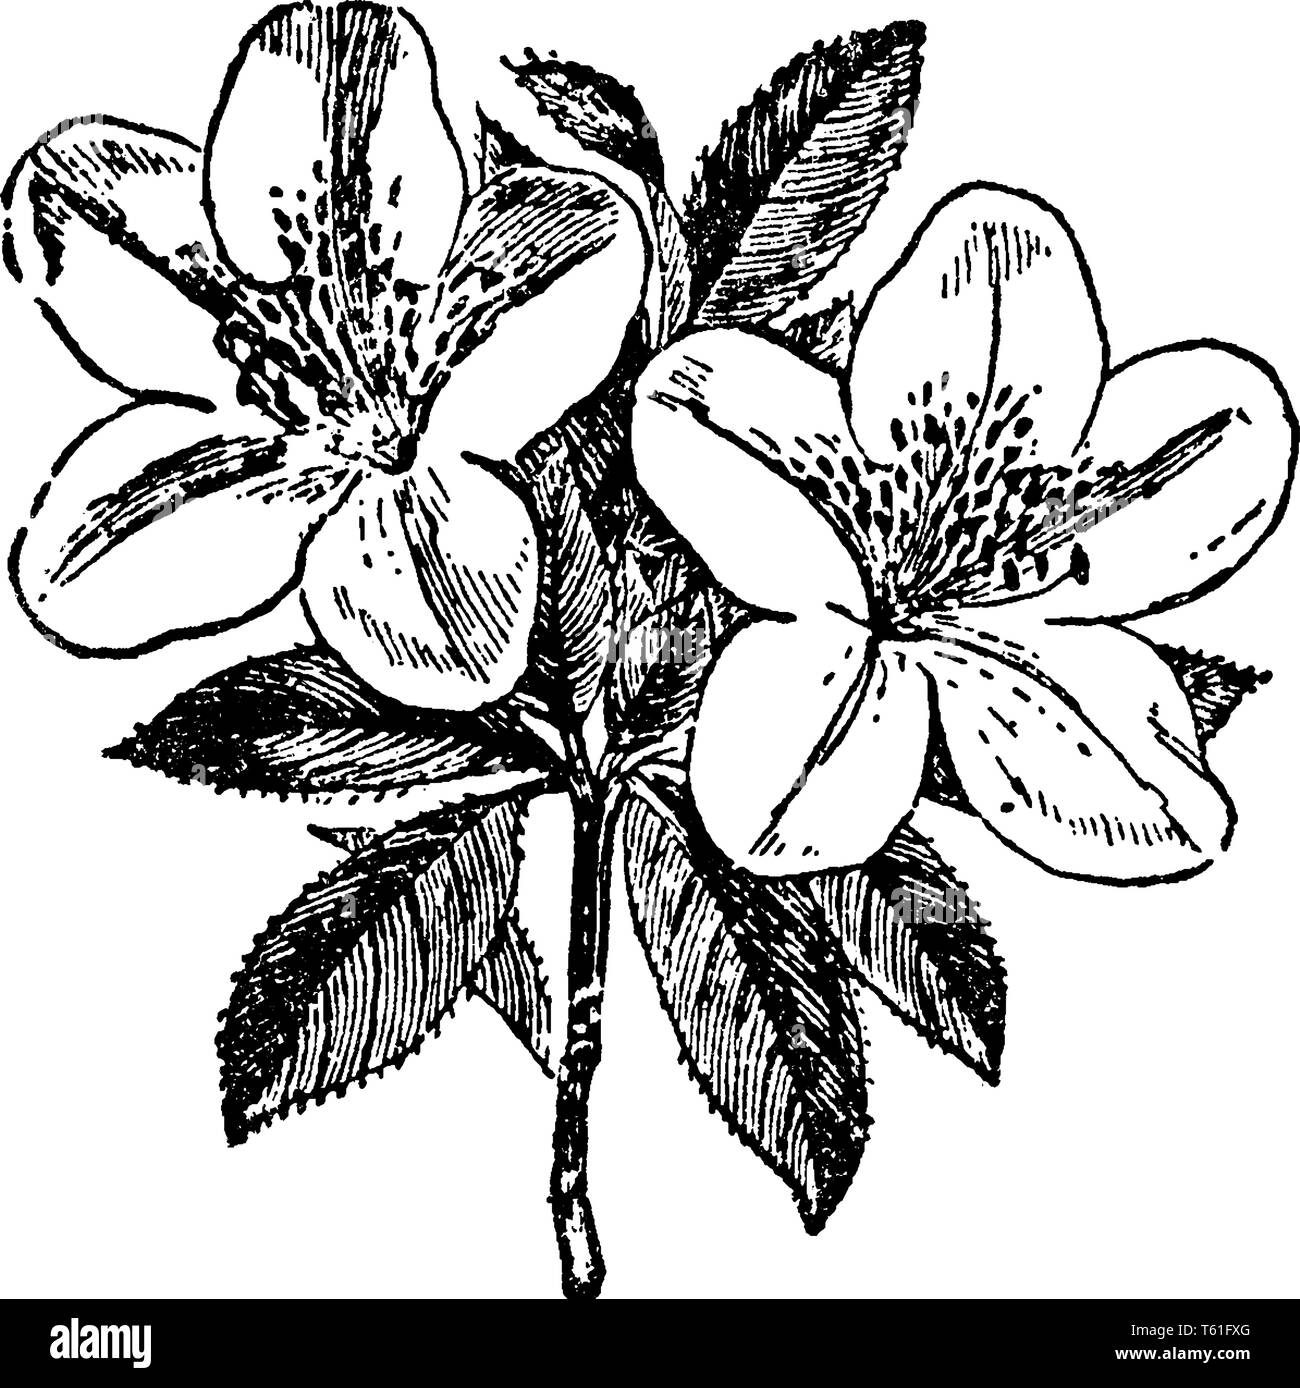 An Azalea is small tree, shrub of flower. Flowers grow only one bloom per stem. The leaves are below the flower, vintage line drawing or engraving ill - Stock Vector